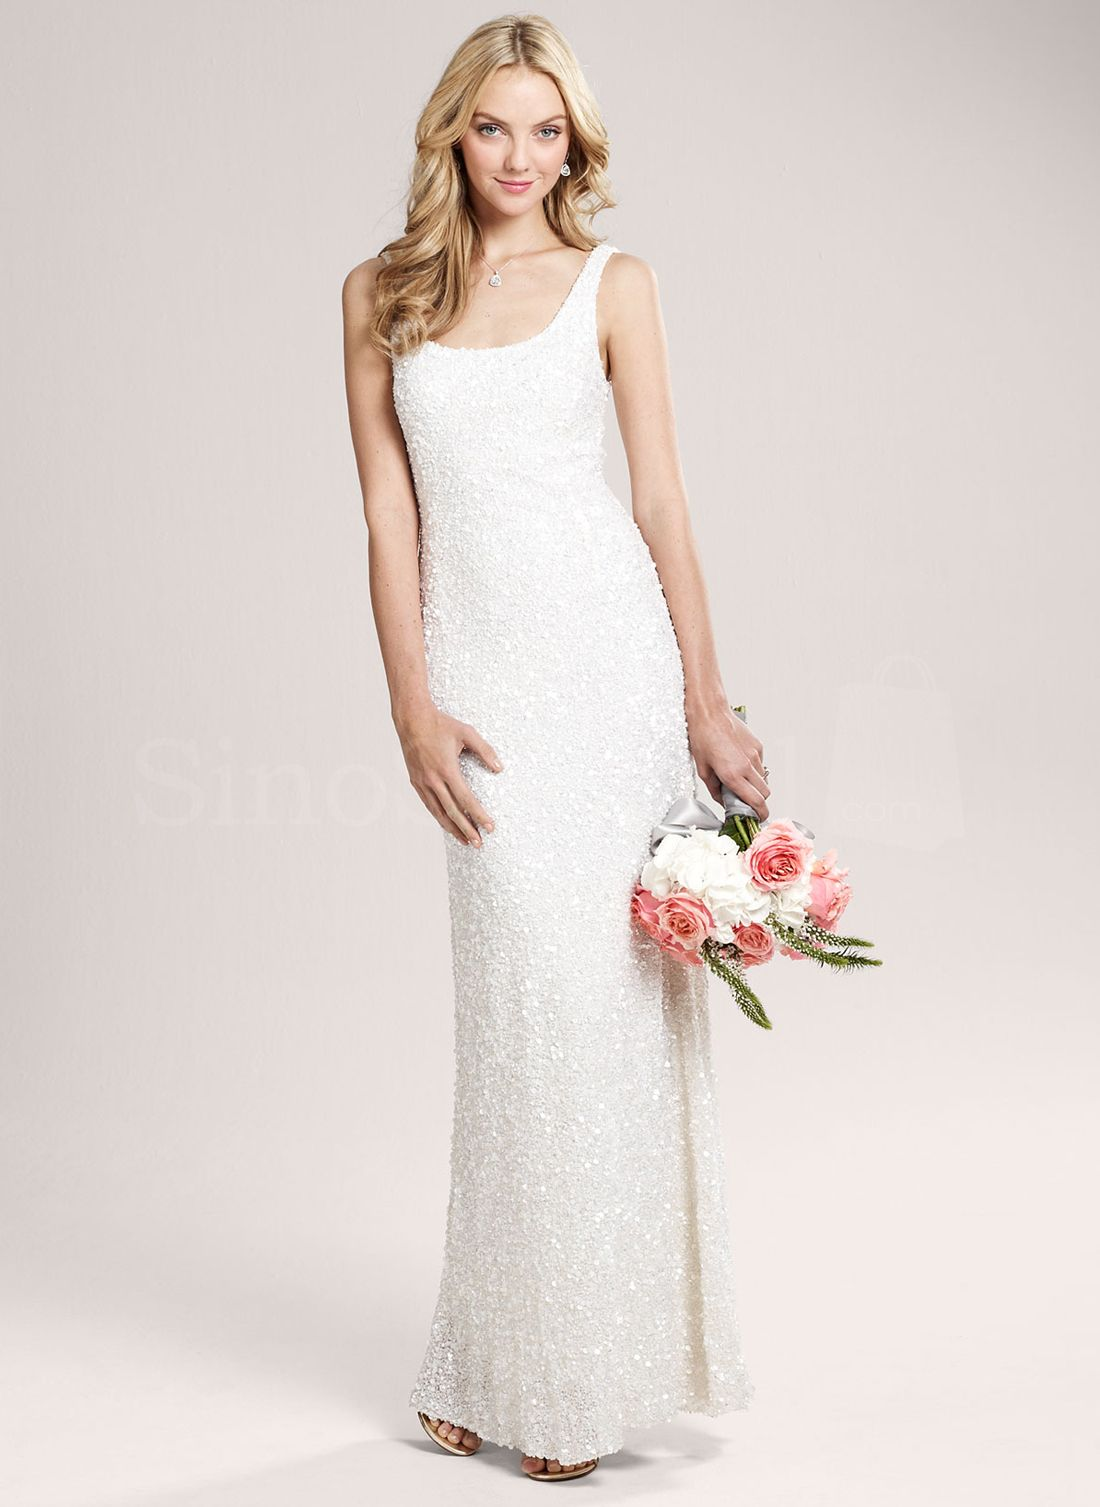 Superb ivory sheathcolumn straps neckline wedding dress elegant